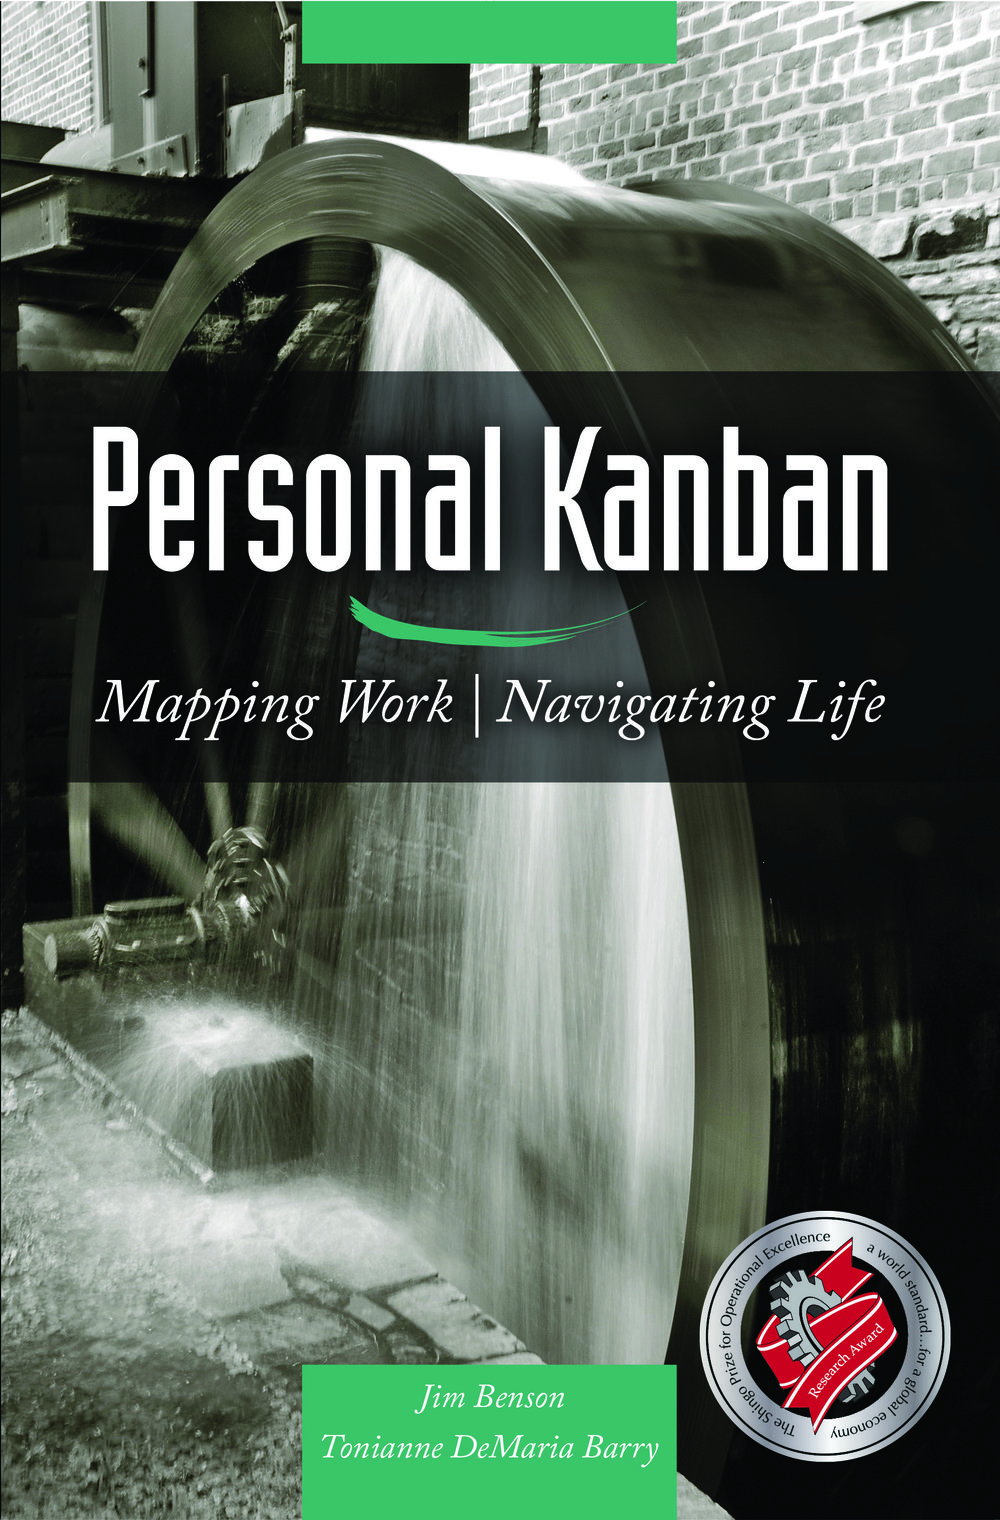 Personal Kanban manages personal, small business, and corporate work worldwide.